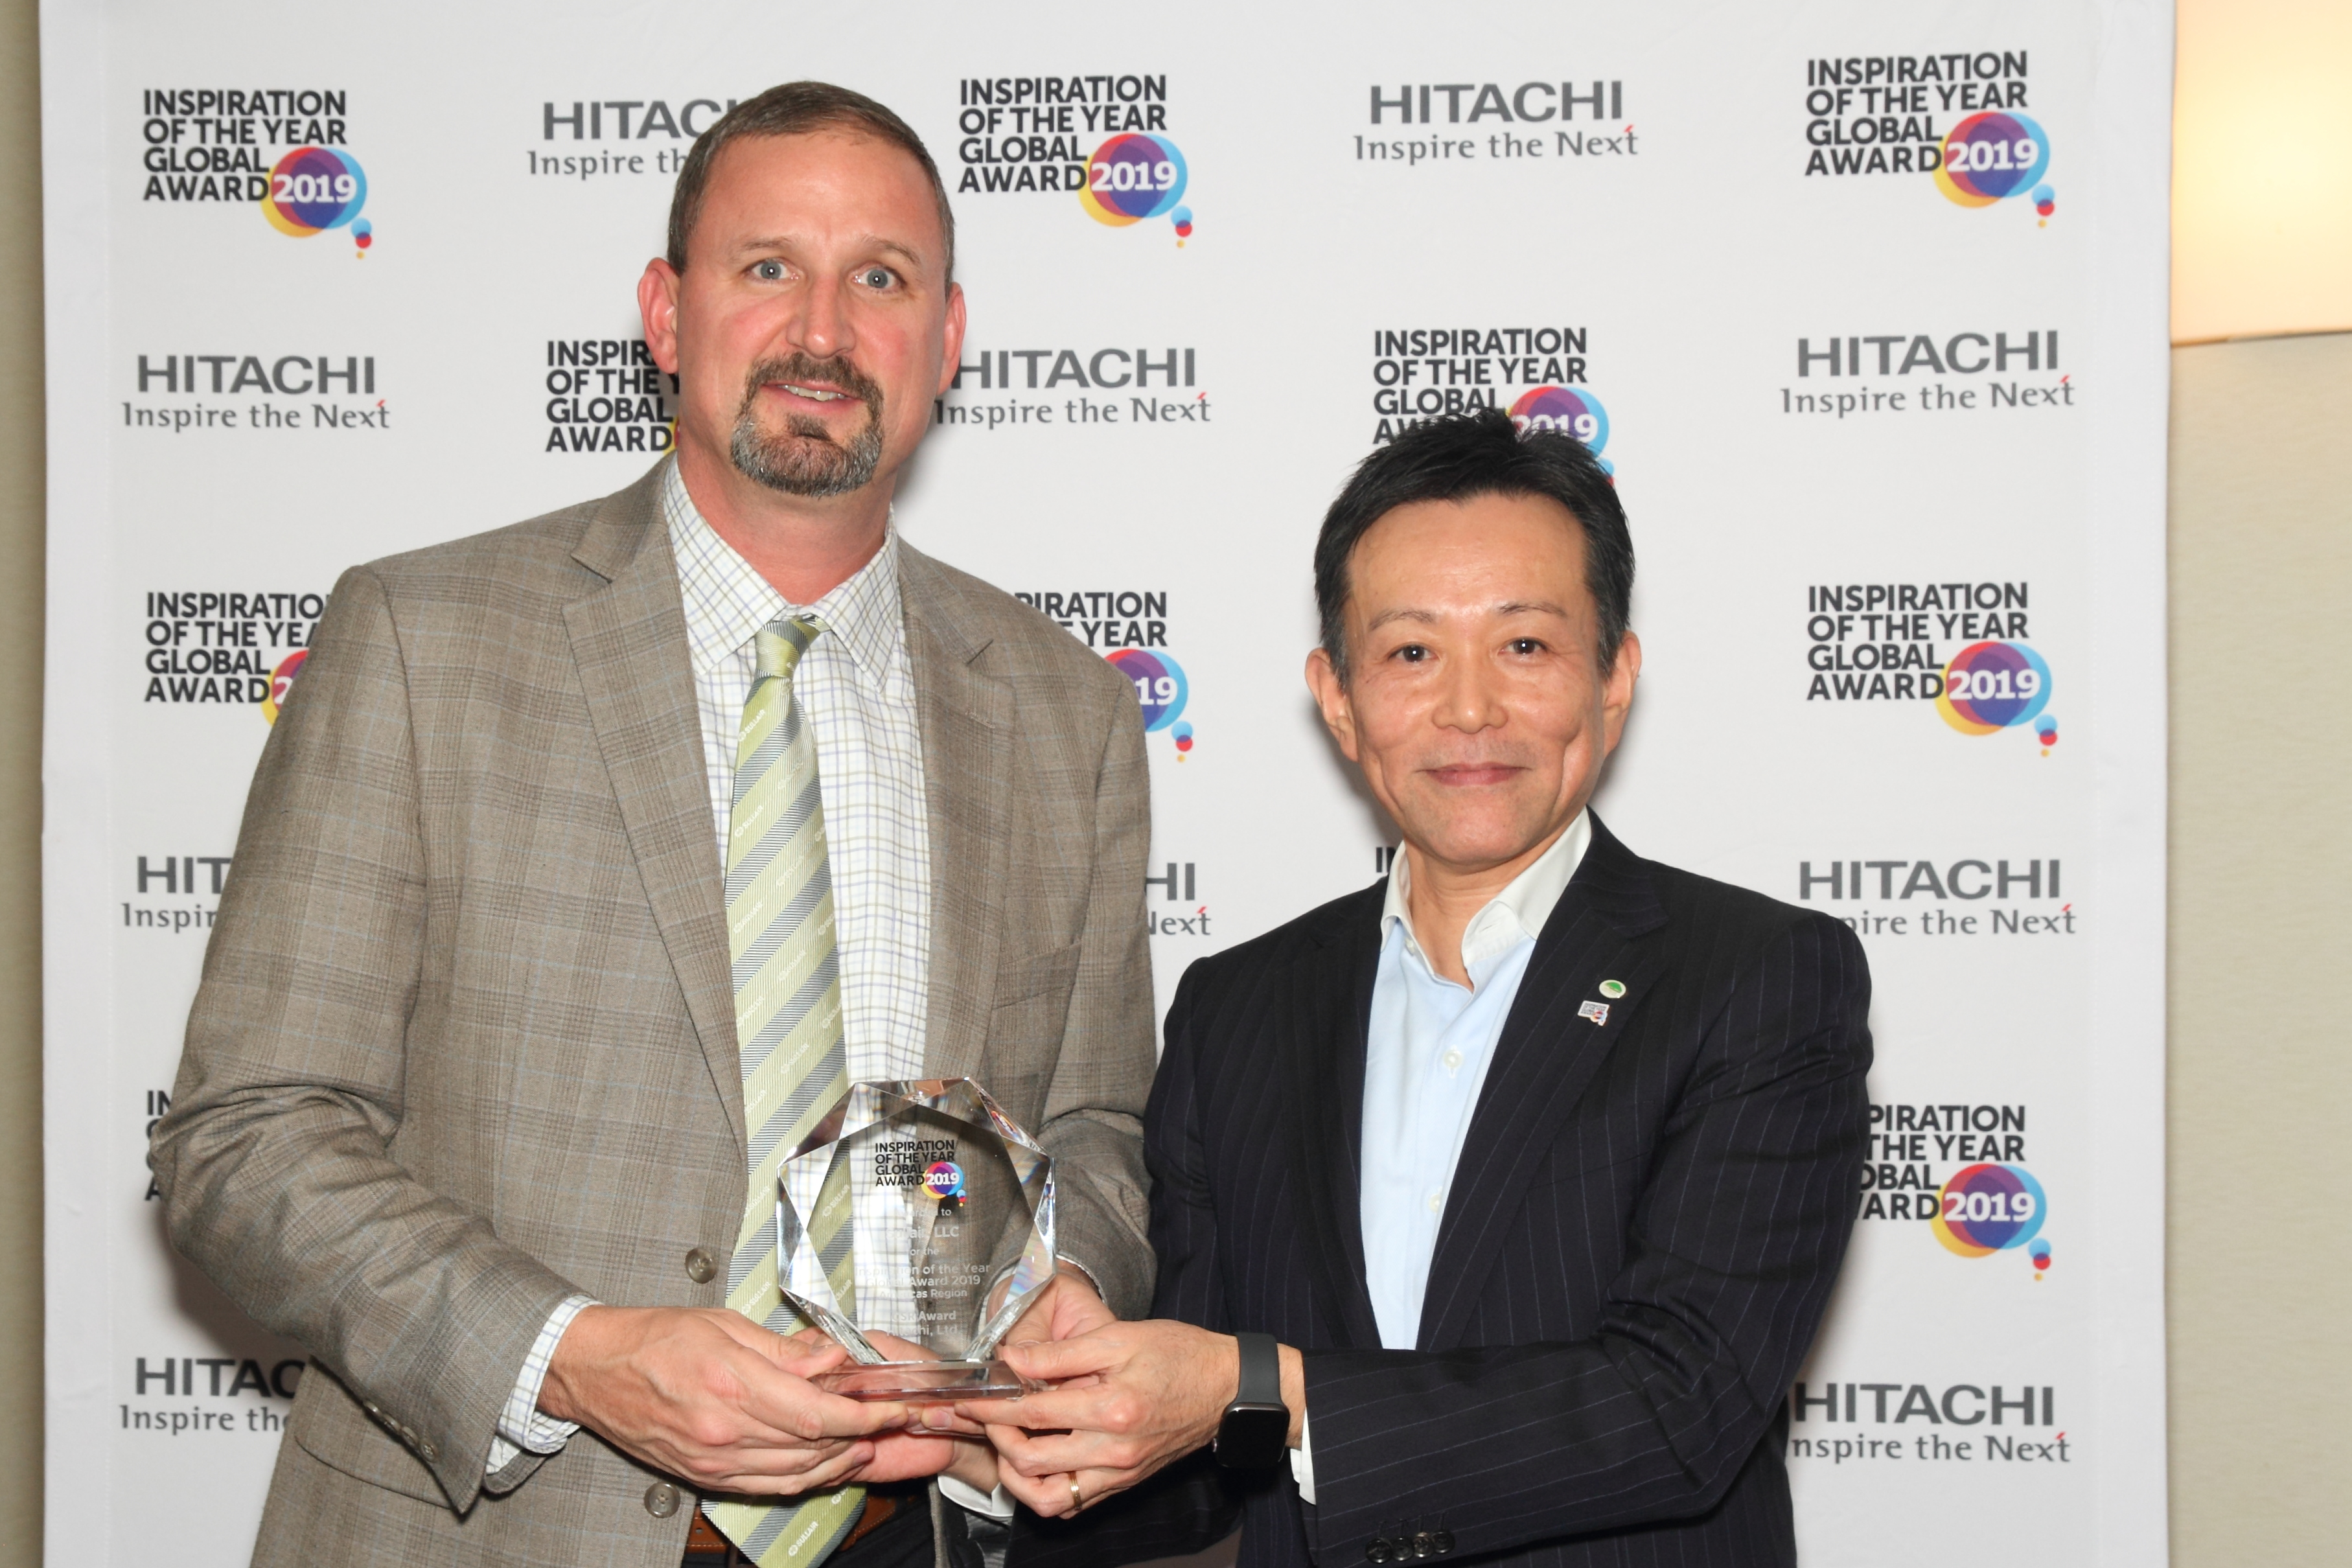 Brian Tylisz, Vice President of Commercial & Industrial Sales for the Americas, accepts the award on behalf of Sullair from Mr. Toshiaki Tokunaga, Chairman of Hitachi Global Digital Holdings